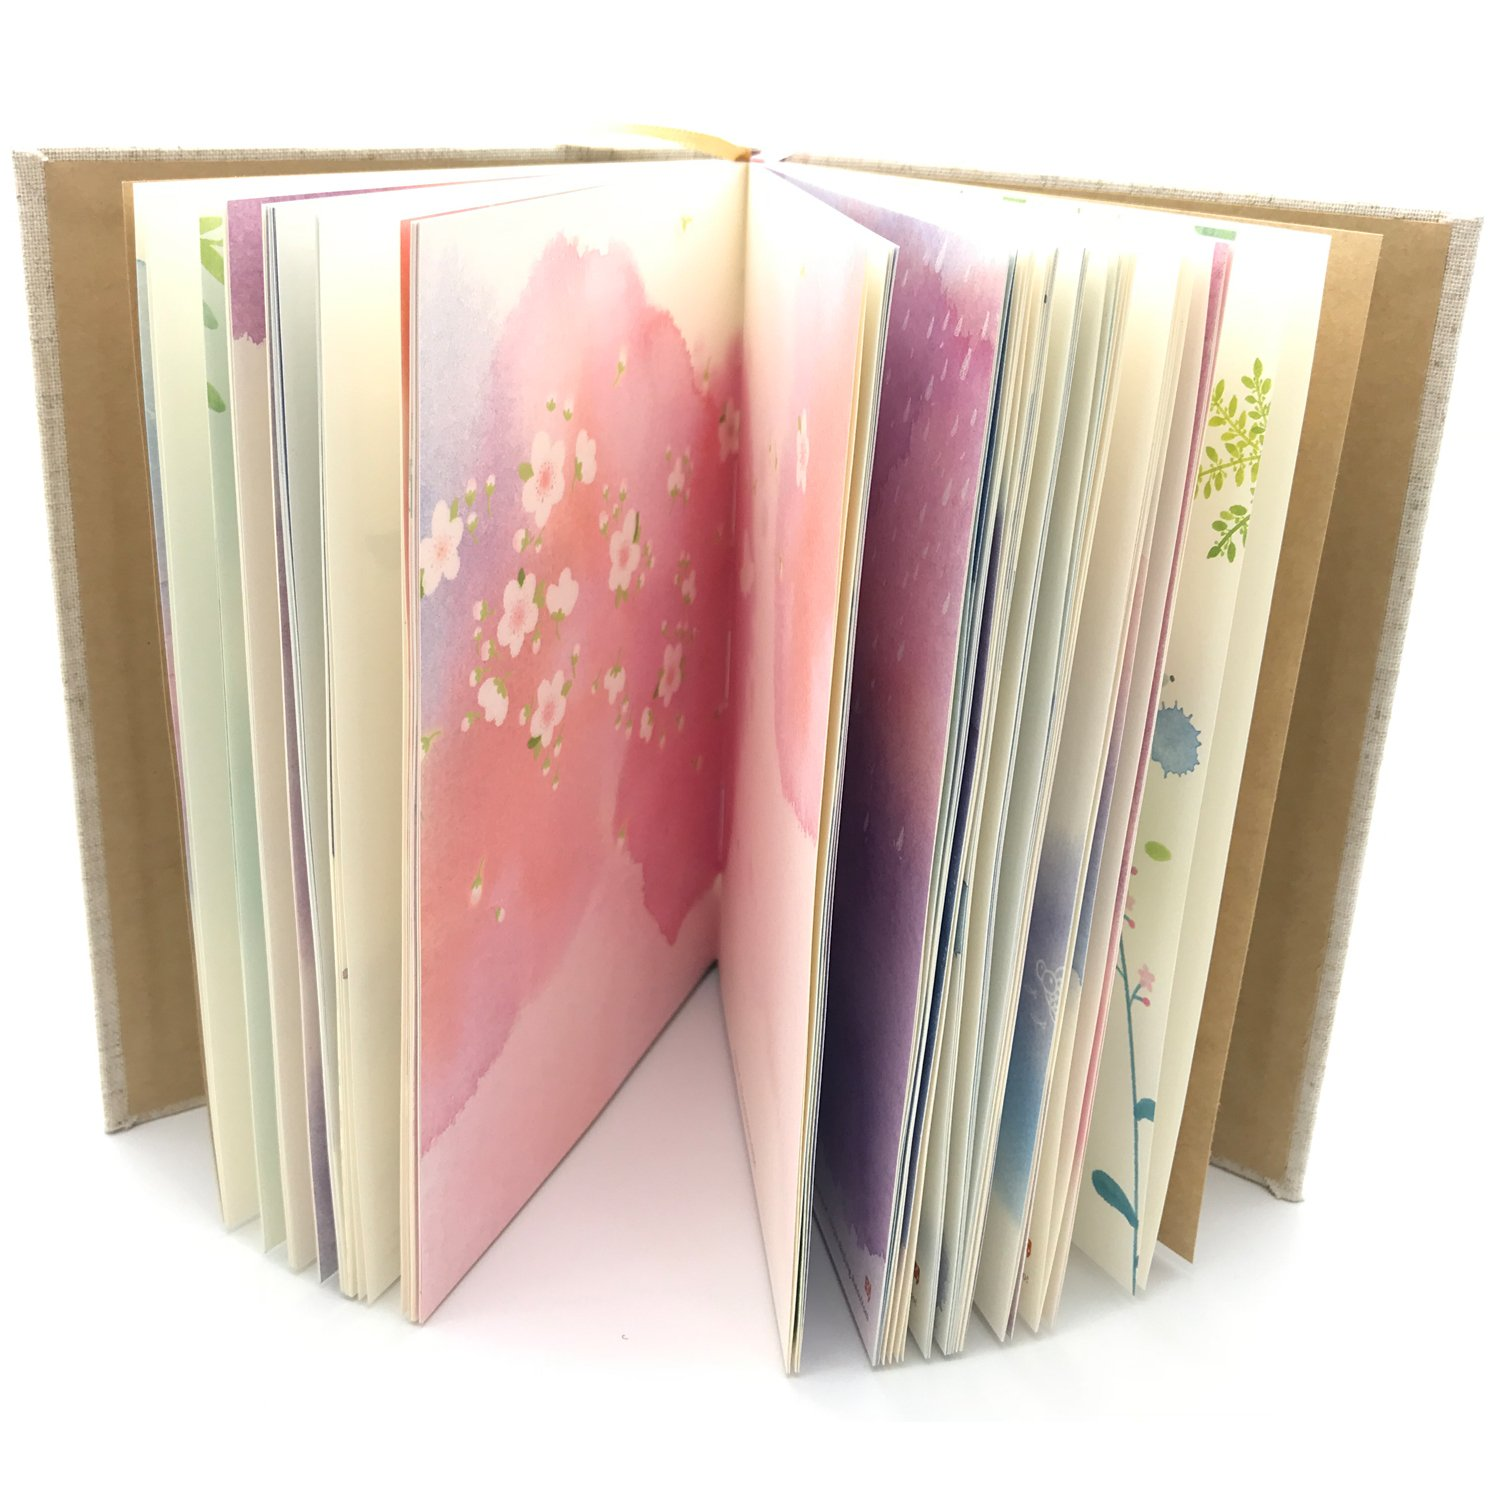 Siixu Colorful Journal Notebook, Hardcover, Pretty Journal for Writing, Elegant Unlined Paper, 5.3 x 7.2 in, 192 Pages